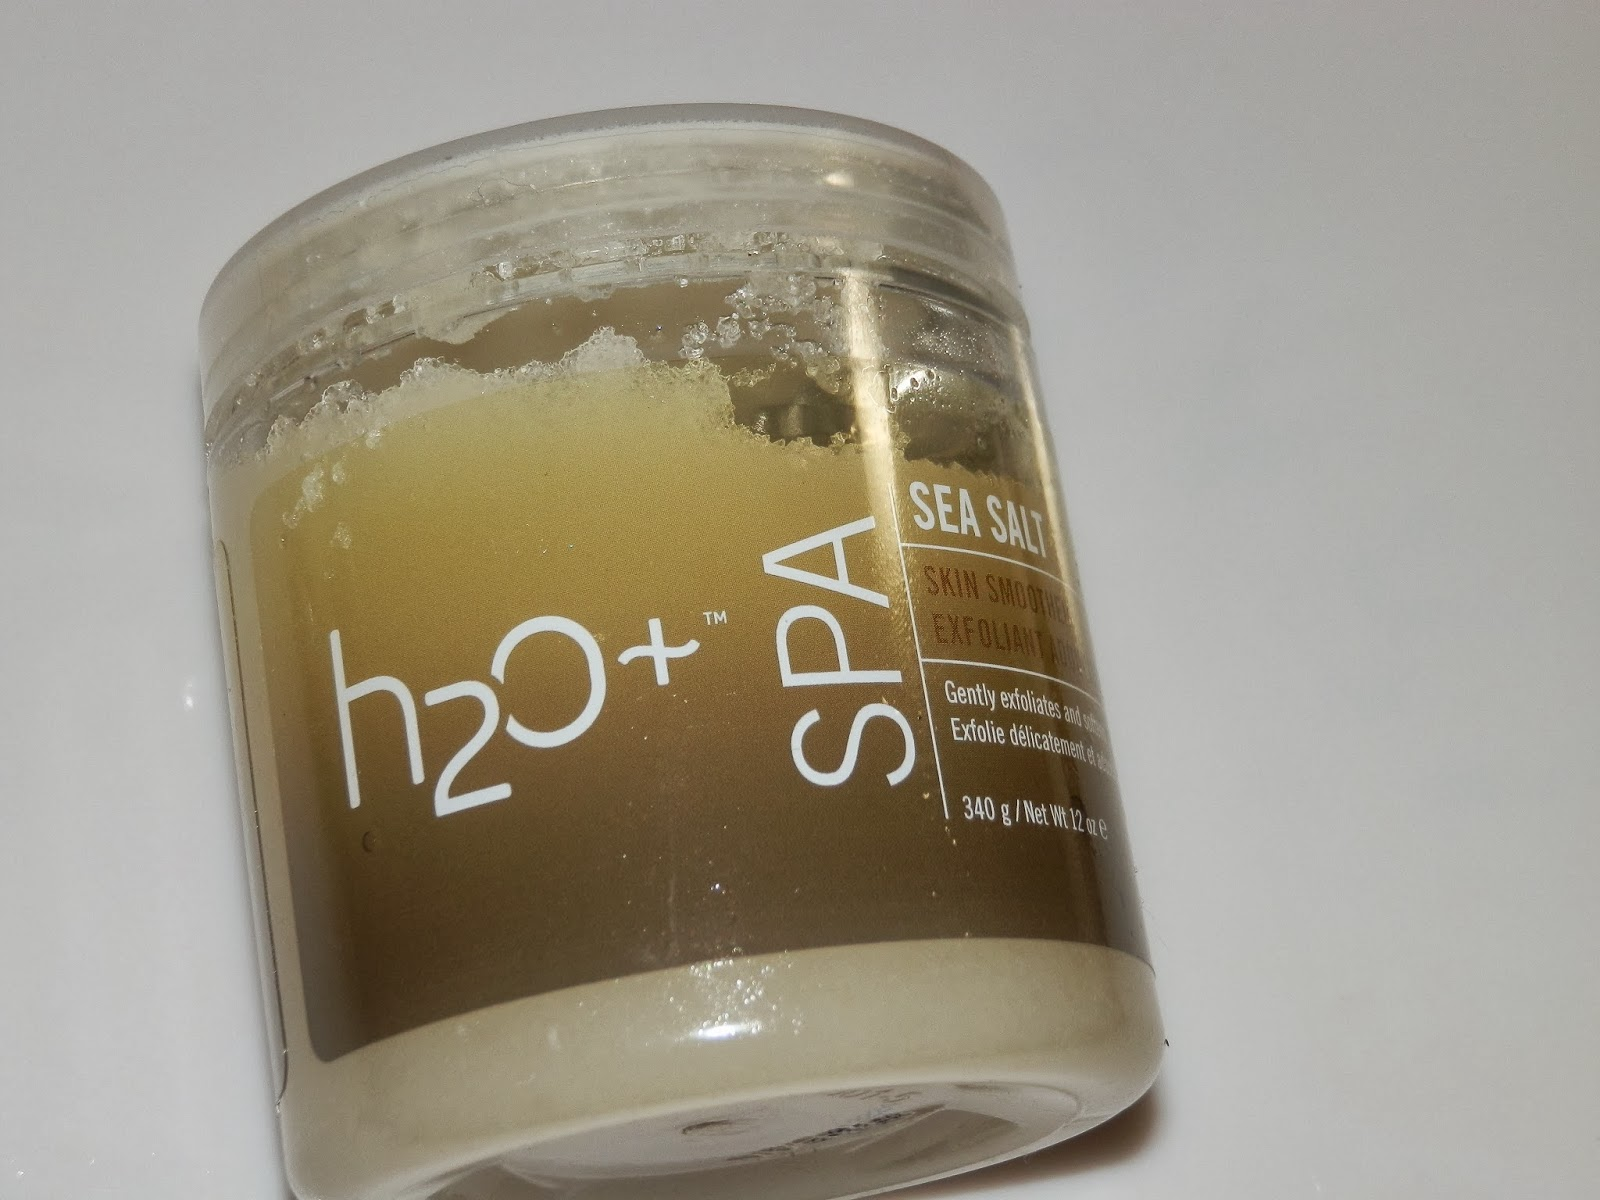 H20+ SPA Sea Salt Skin Smoother Reviews